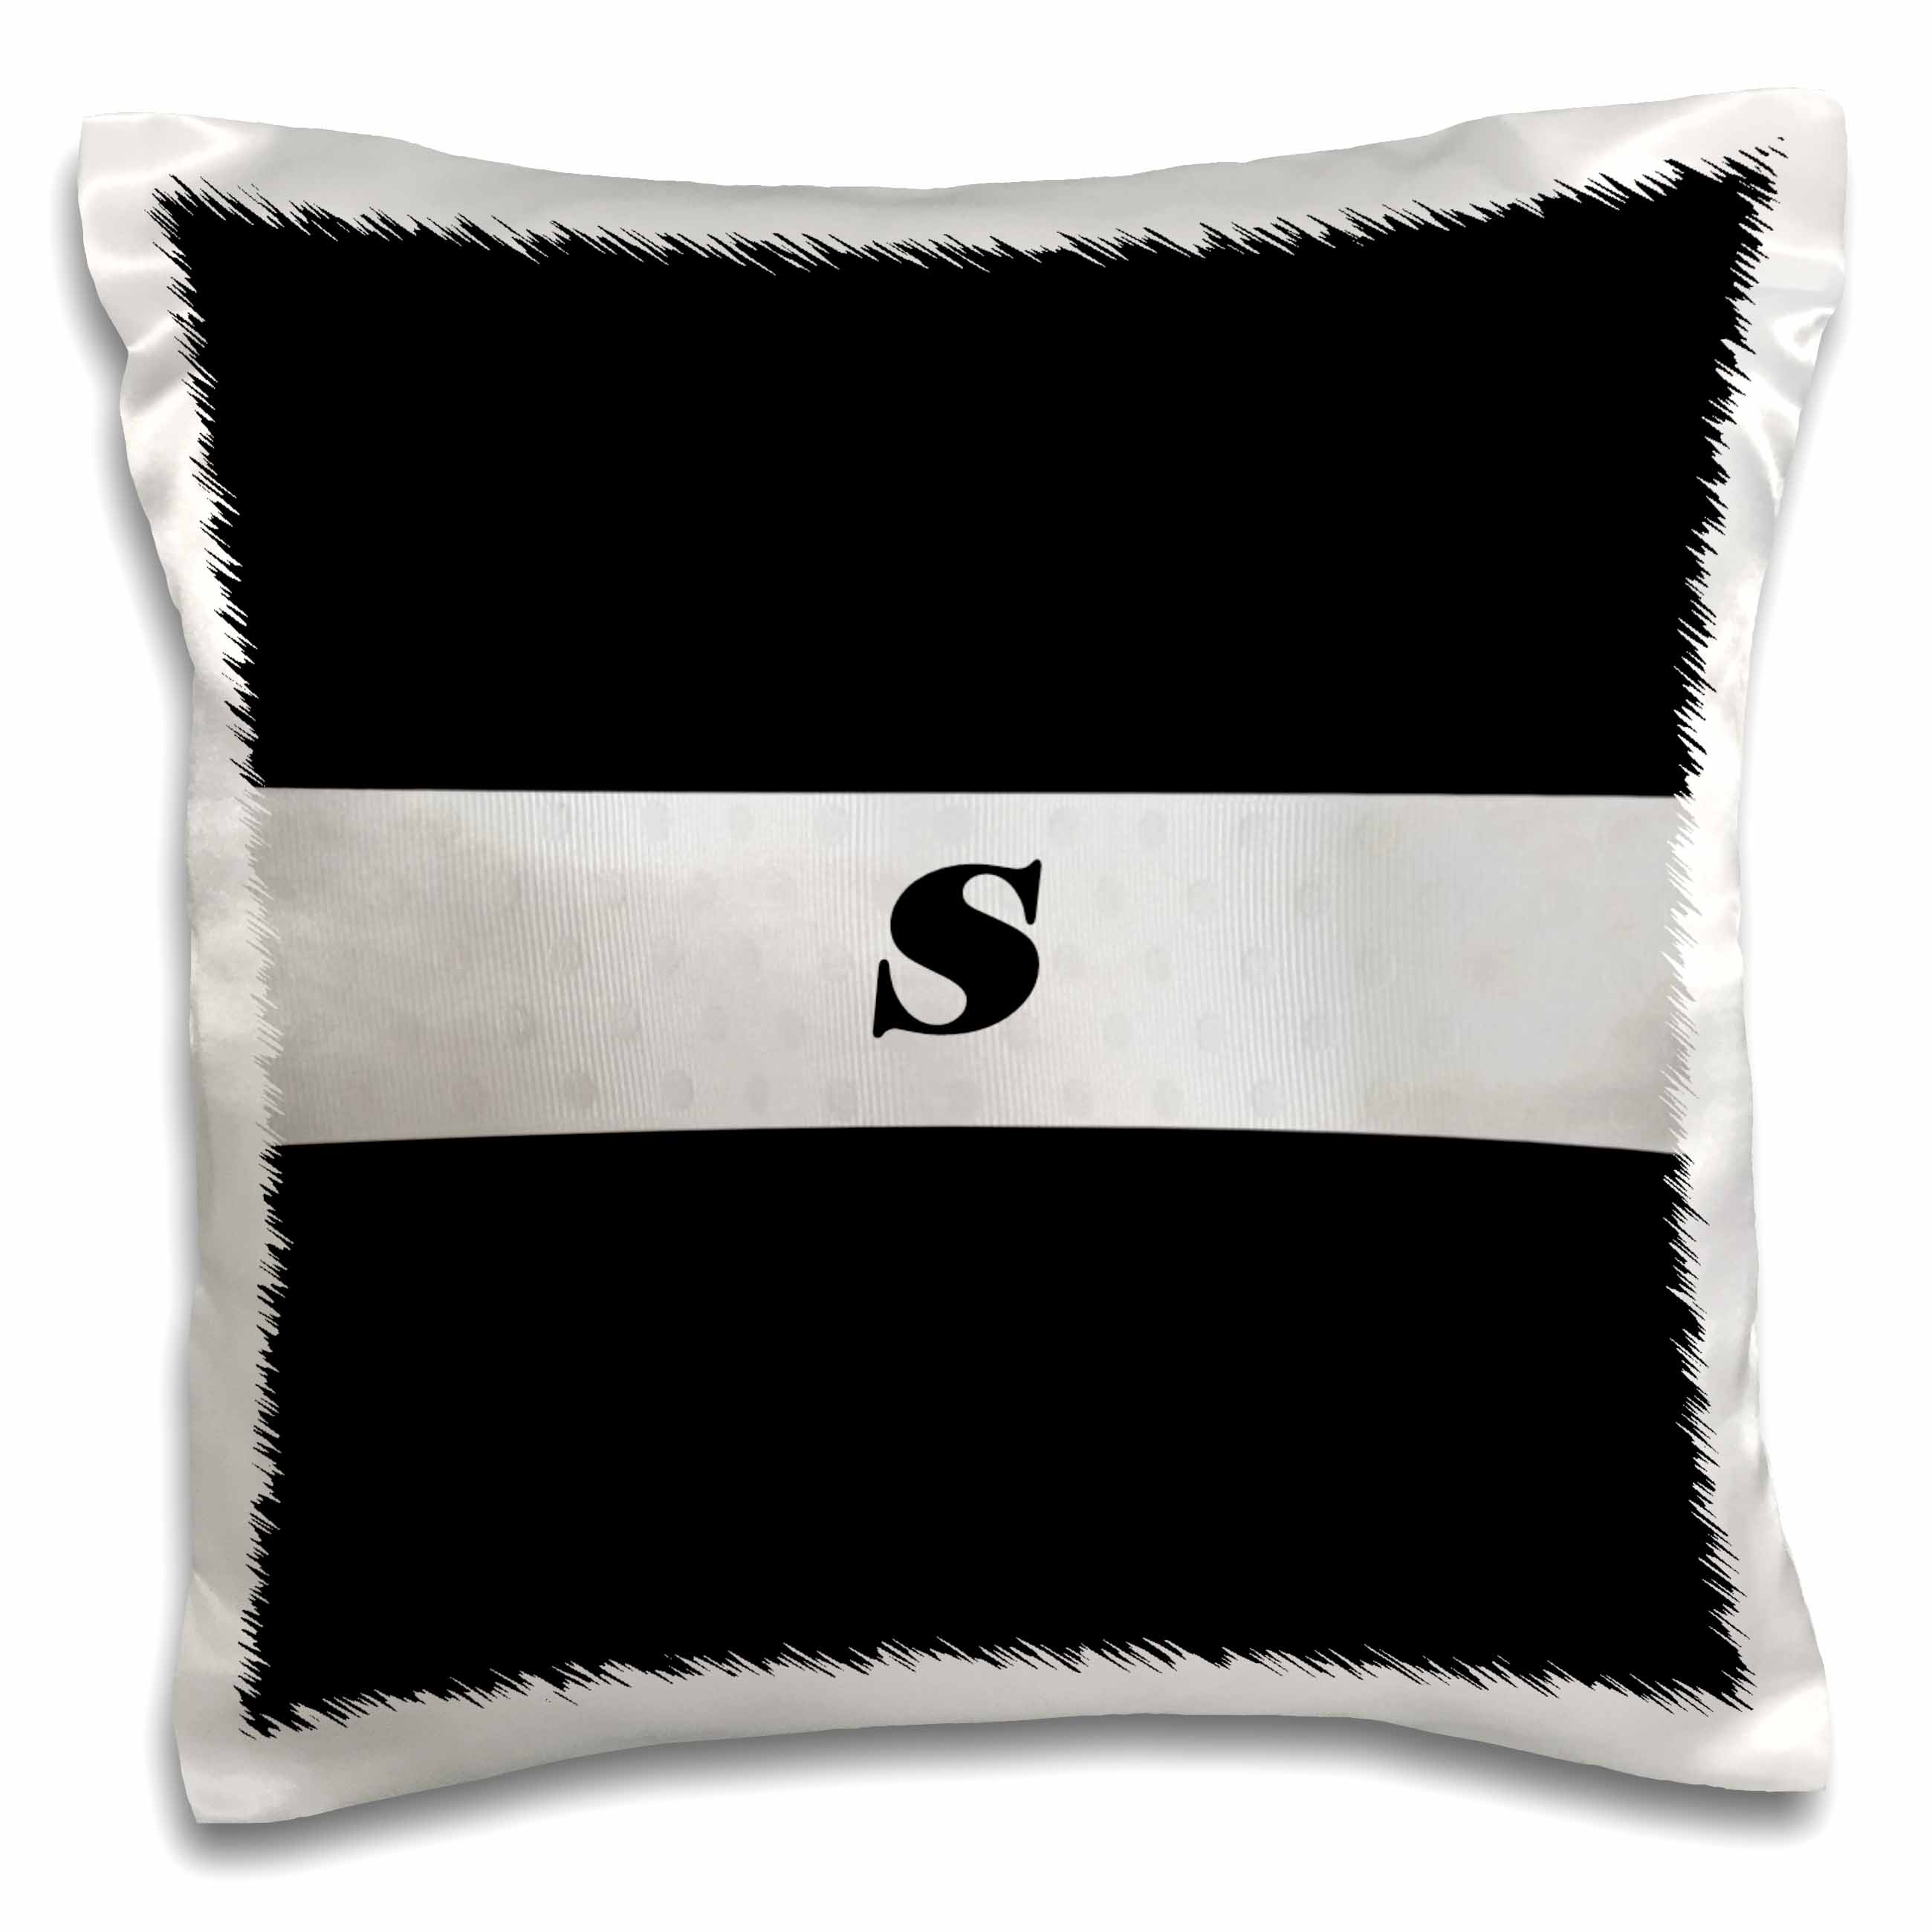 3dRose Black n Silver Monogram Letter S, Pillow Case, 16 by 16-inch